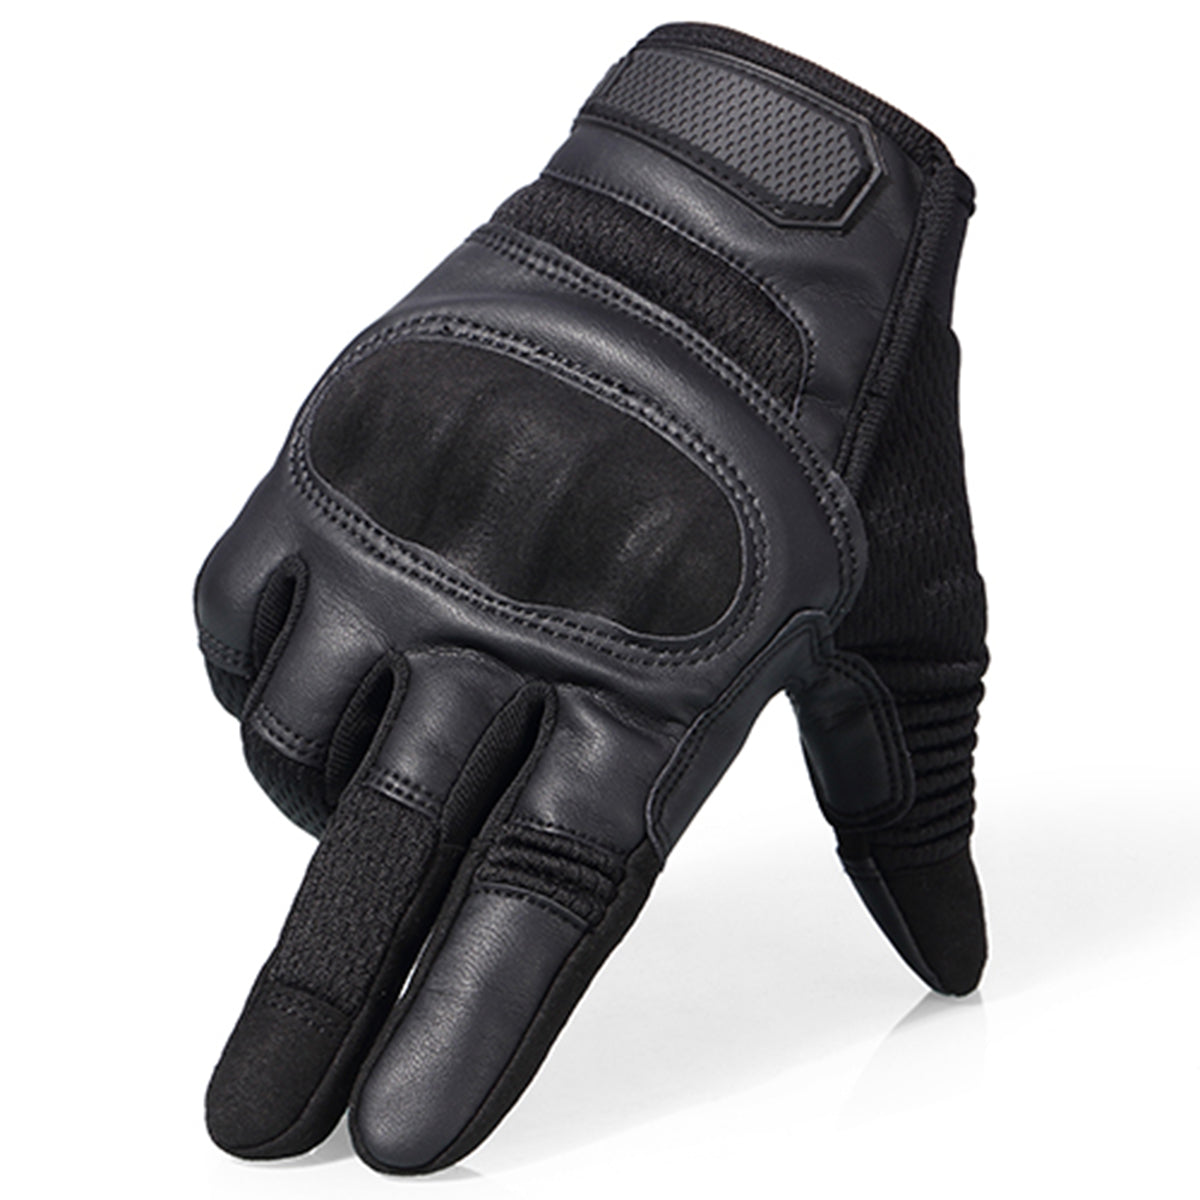 Hard Knuckle Full Finger Motorcycle Gloves